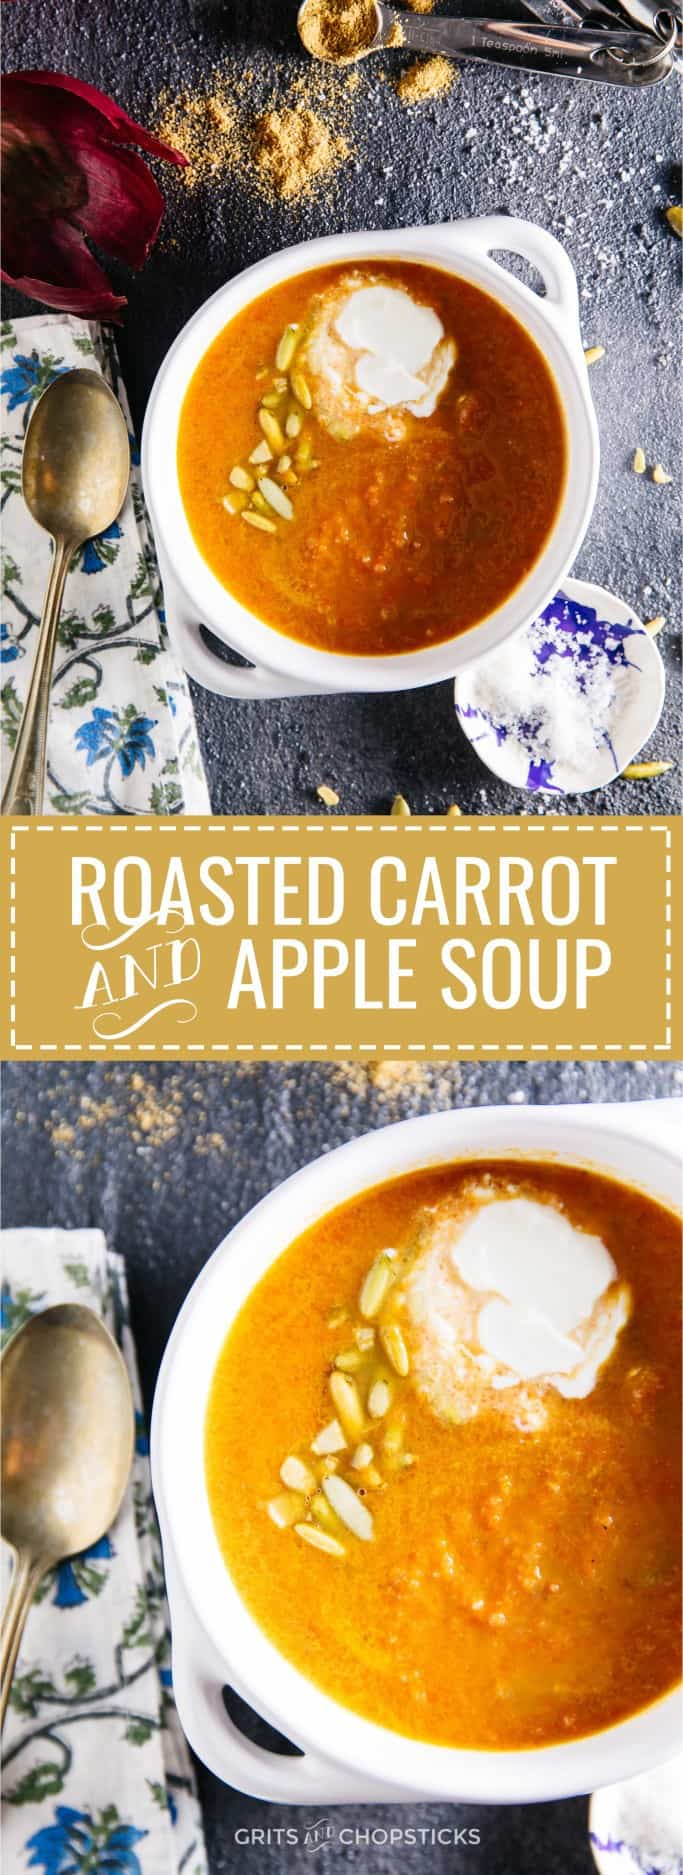 A weekday recipe for a comforting, rustic roasted carrot and apple soup